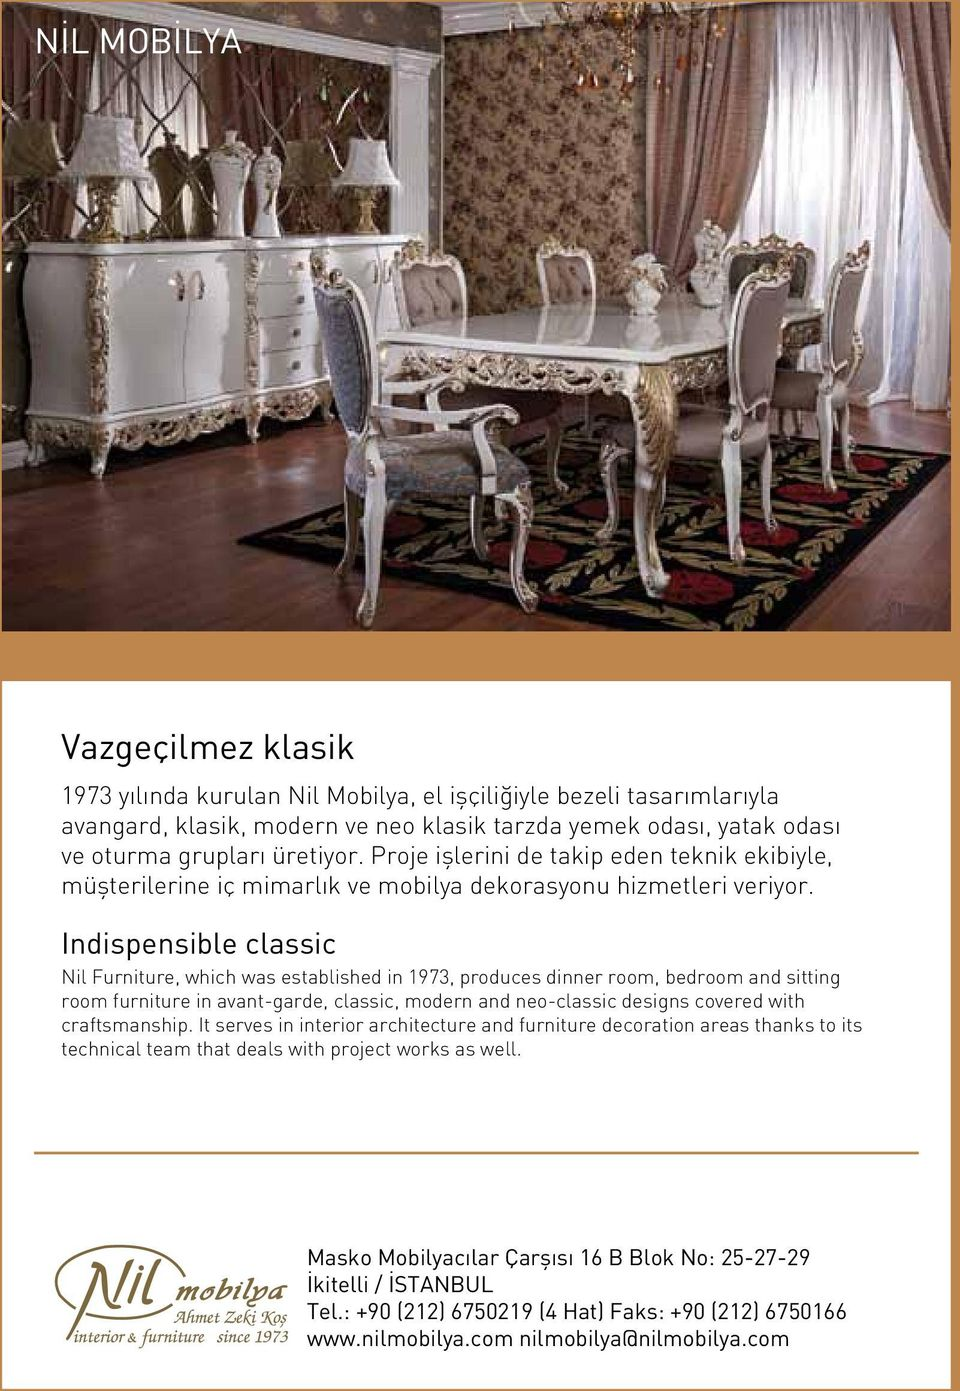 Indispensible classic Nil Furniture, which was established in 1973, produces dinner room, bedroom and sitting room furniture in avant-garde, classic, modern and neo-classic designs covered with